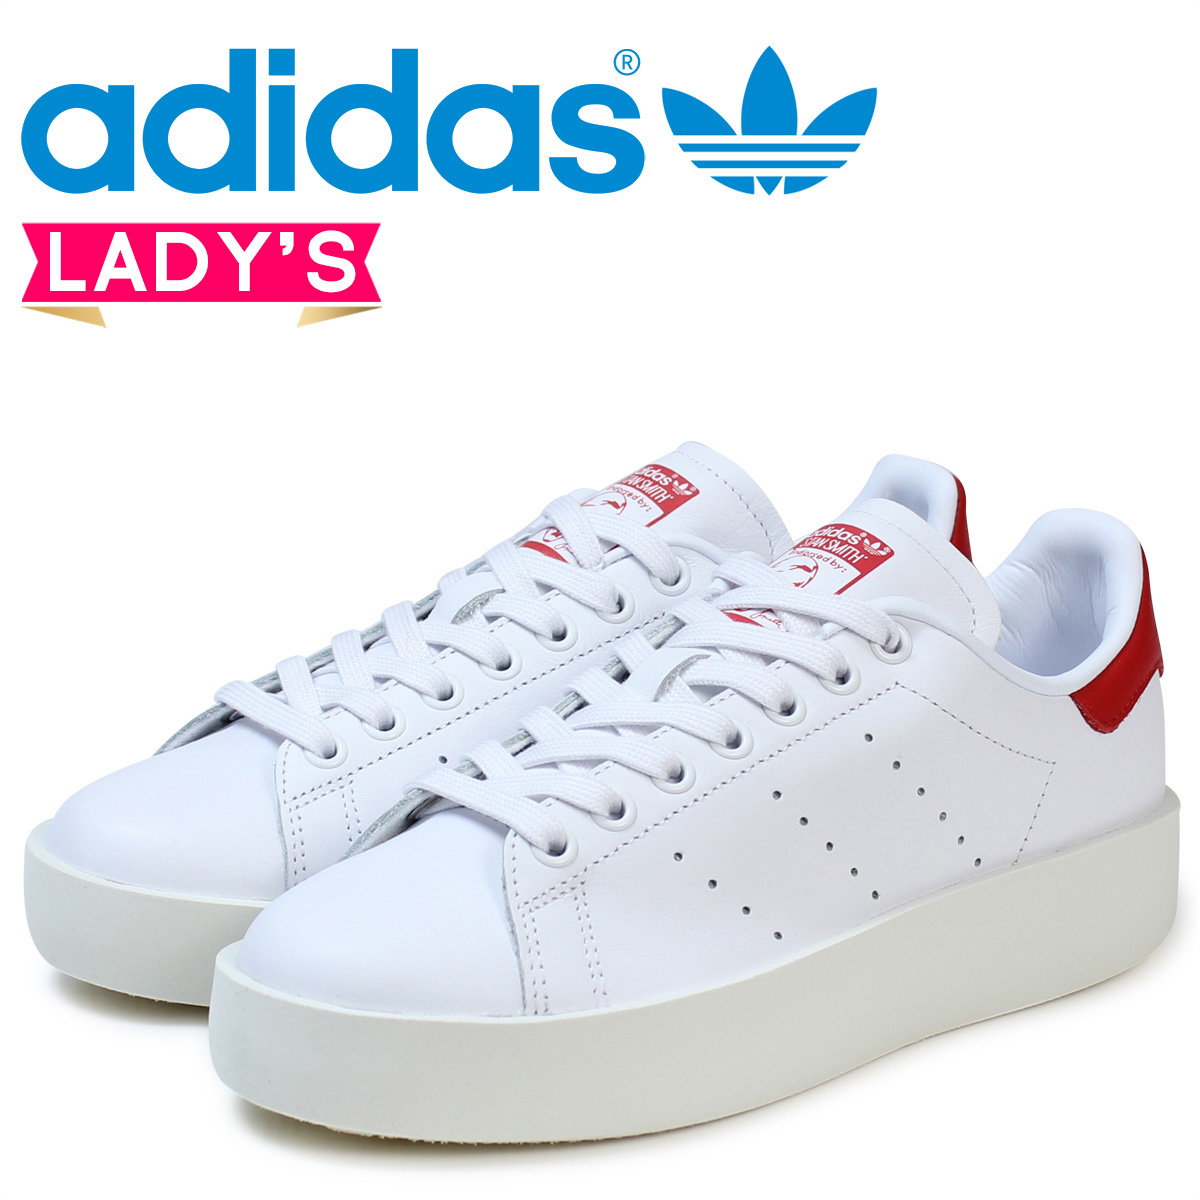 adidas Stan Smith Leather Sneakers In M20324